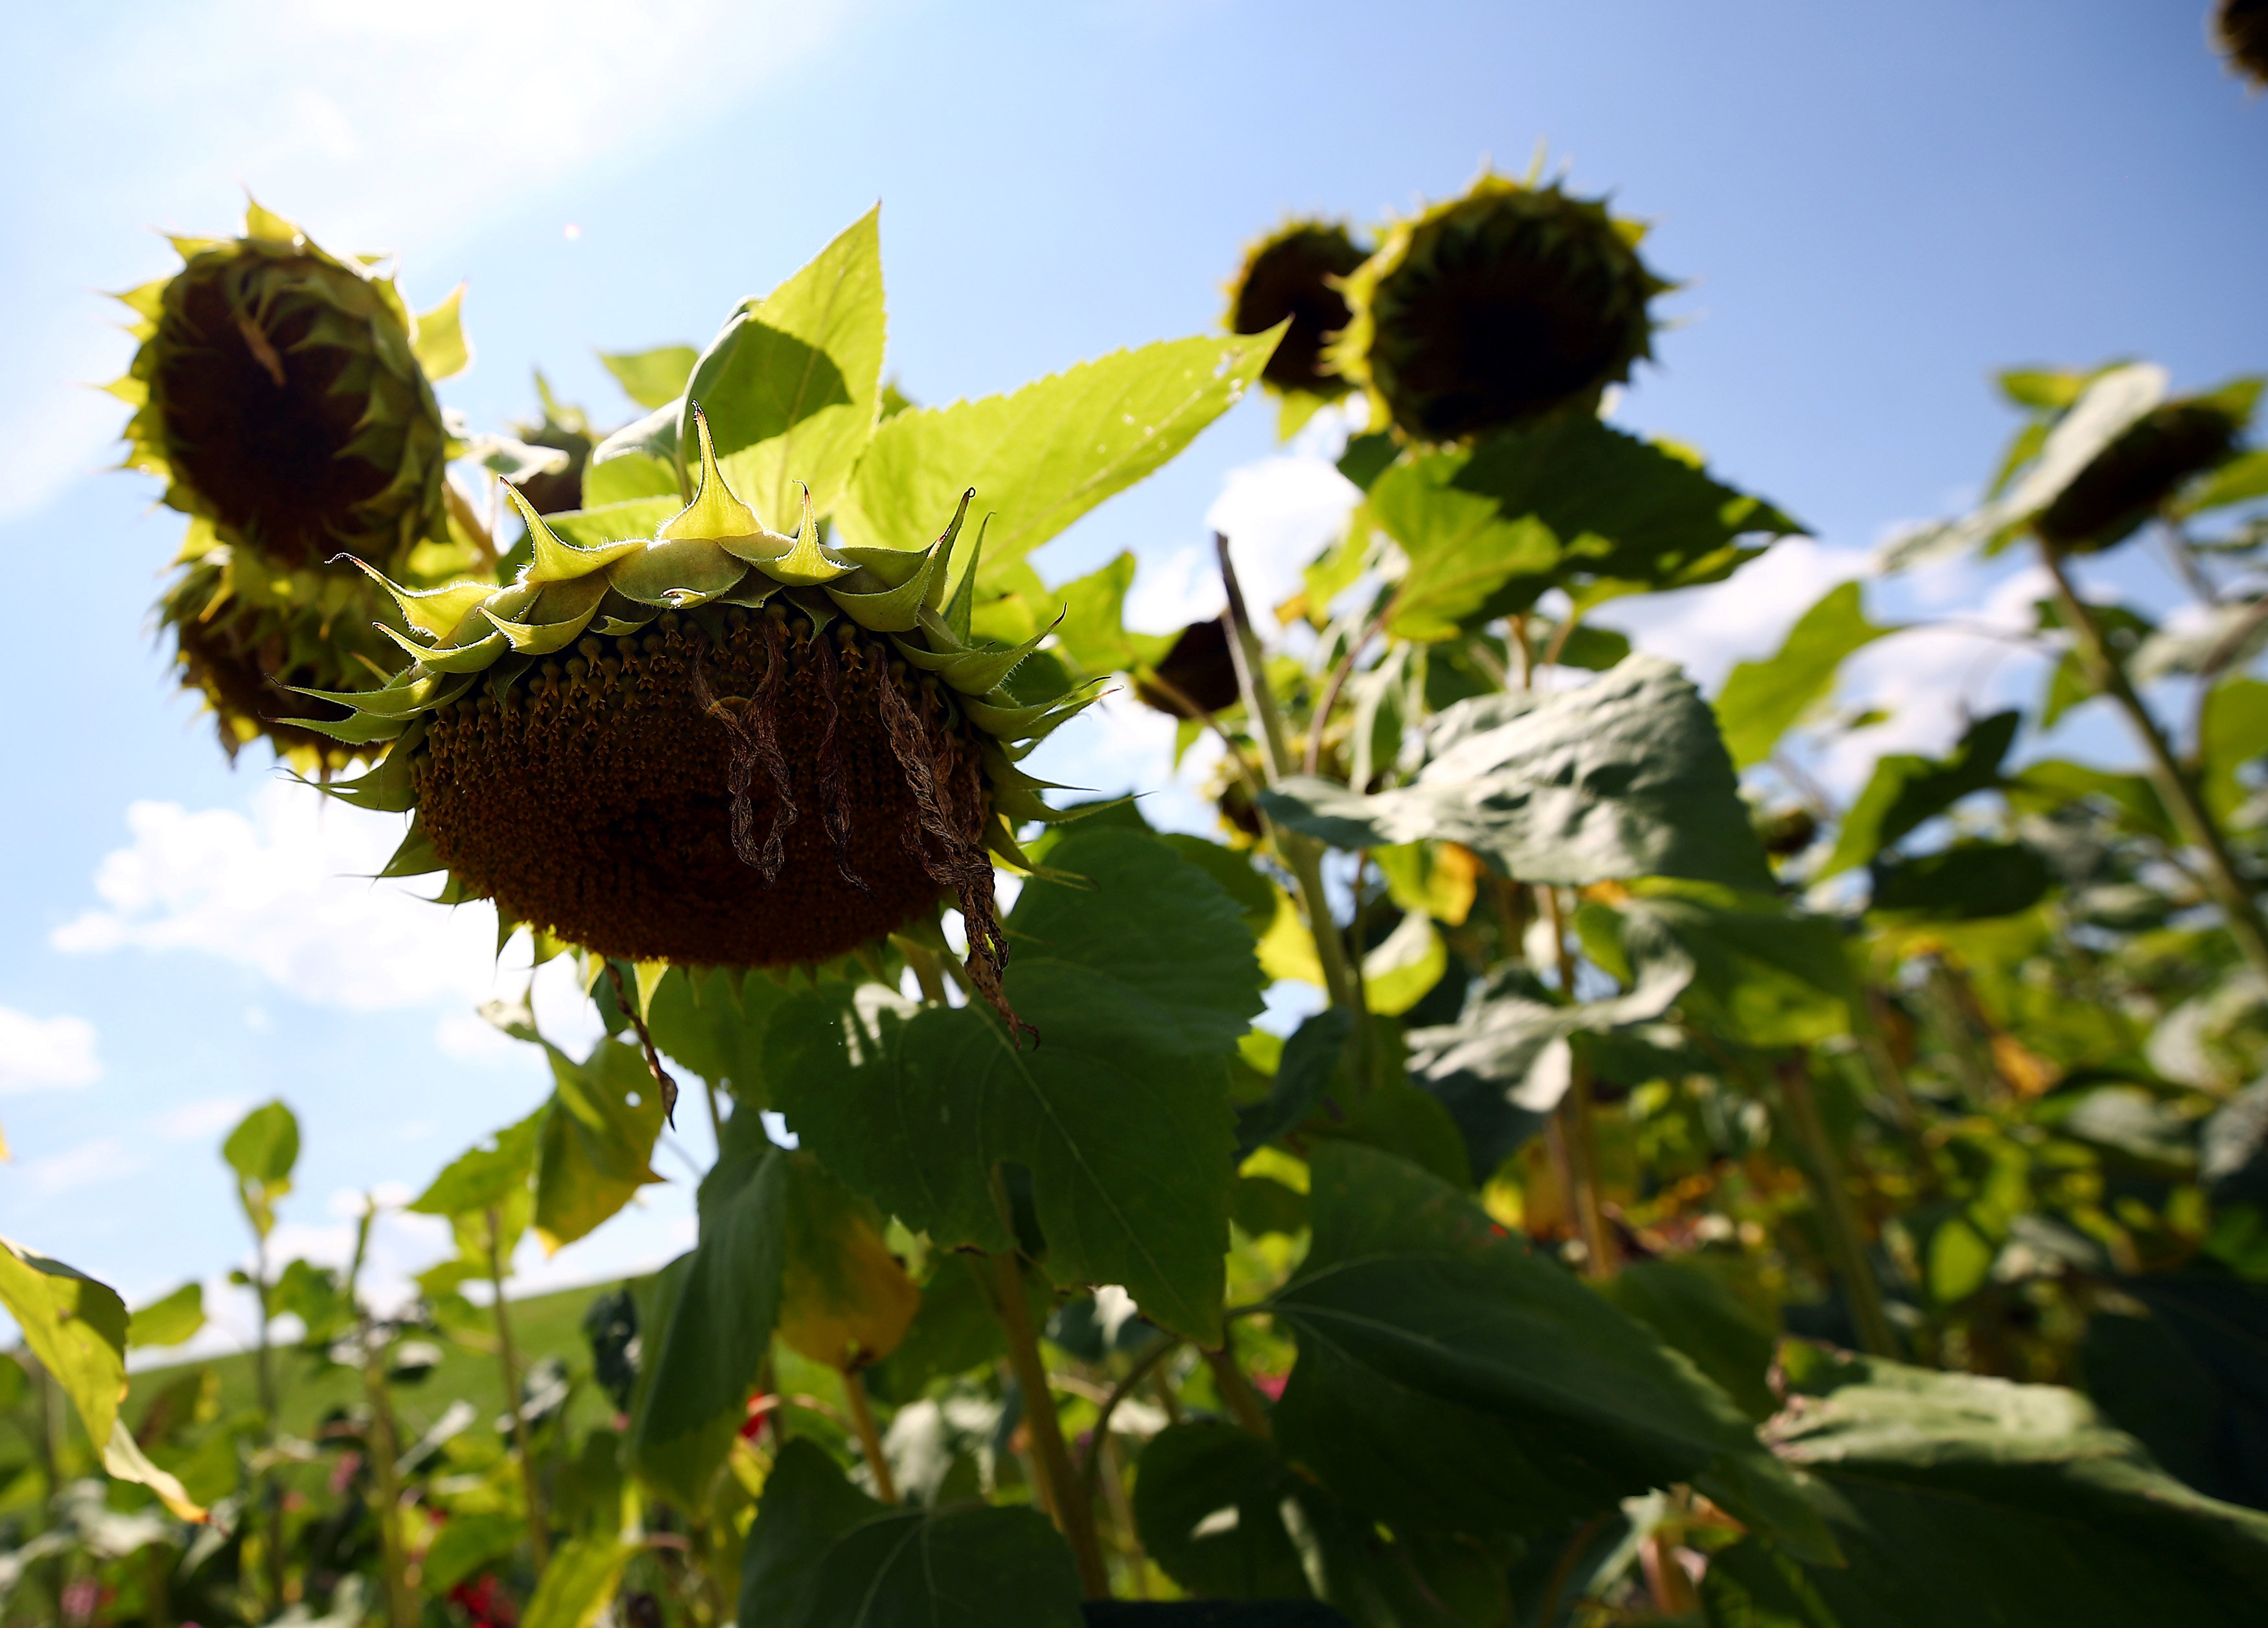 Dried out sunflowers are seen on a field in Holzkirchen near Munich